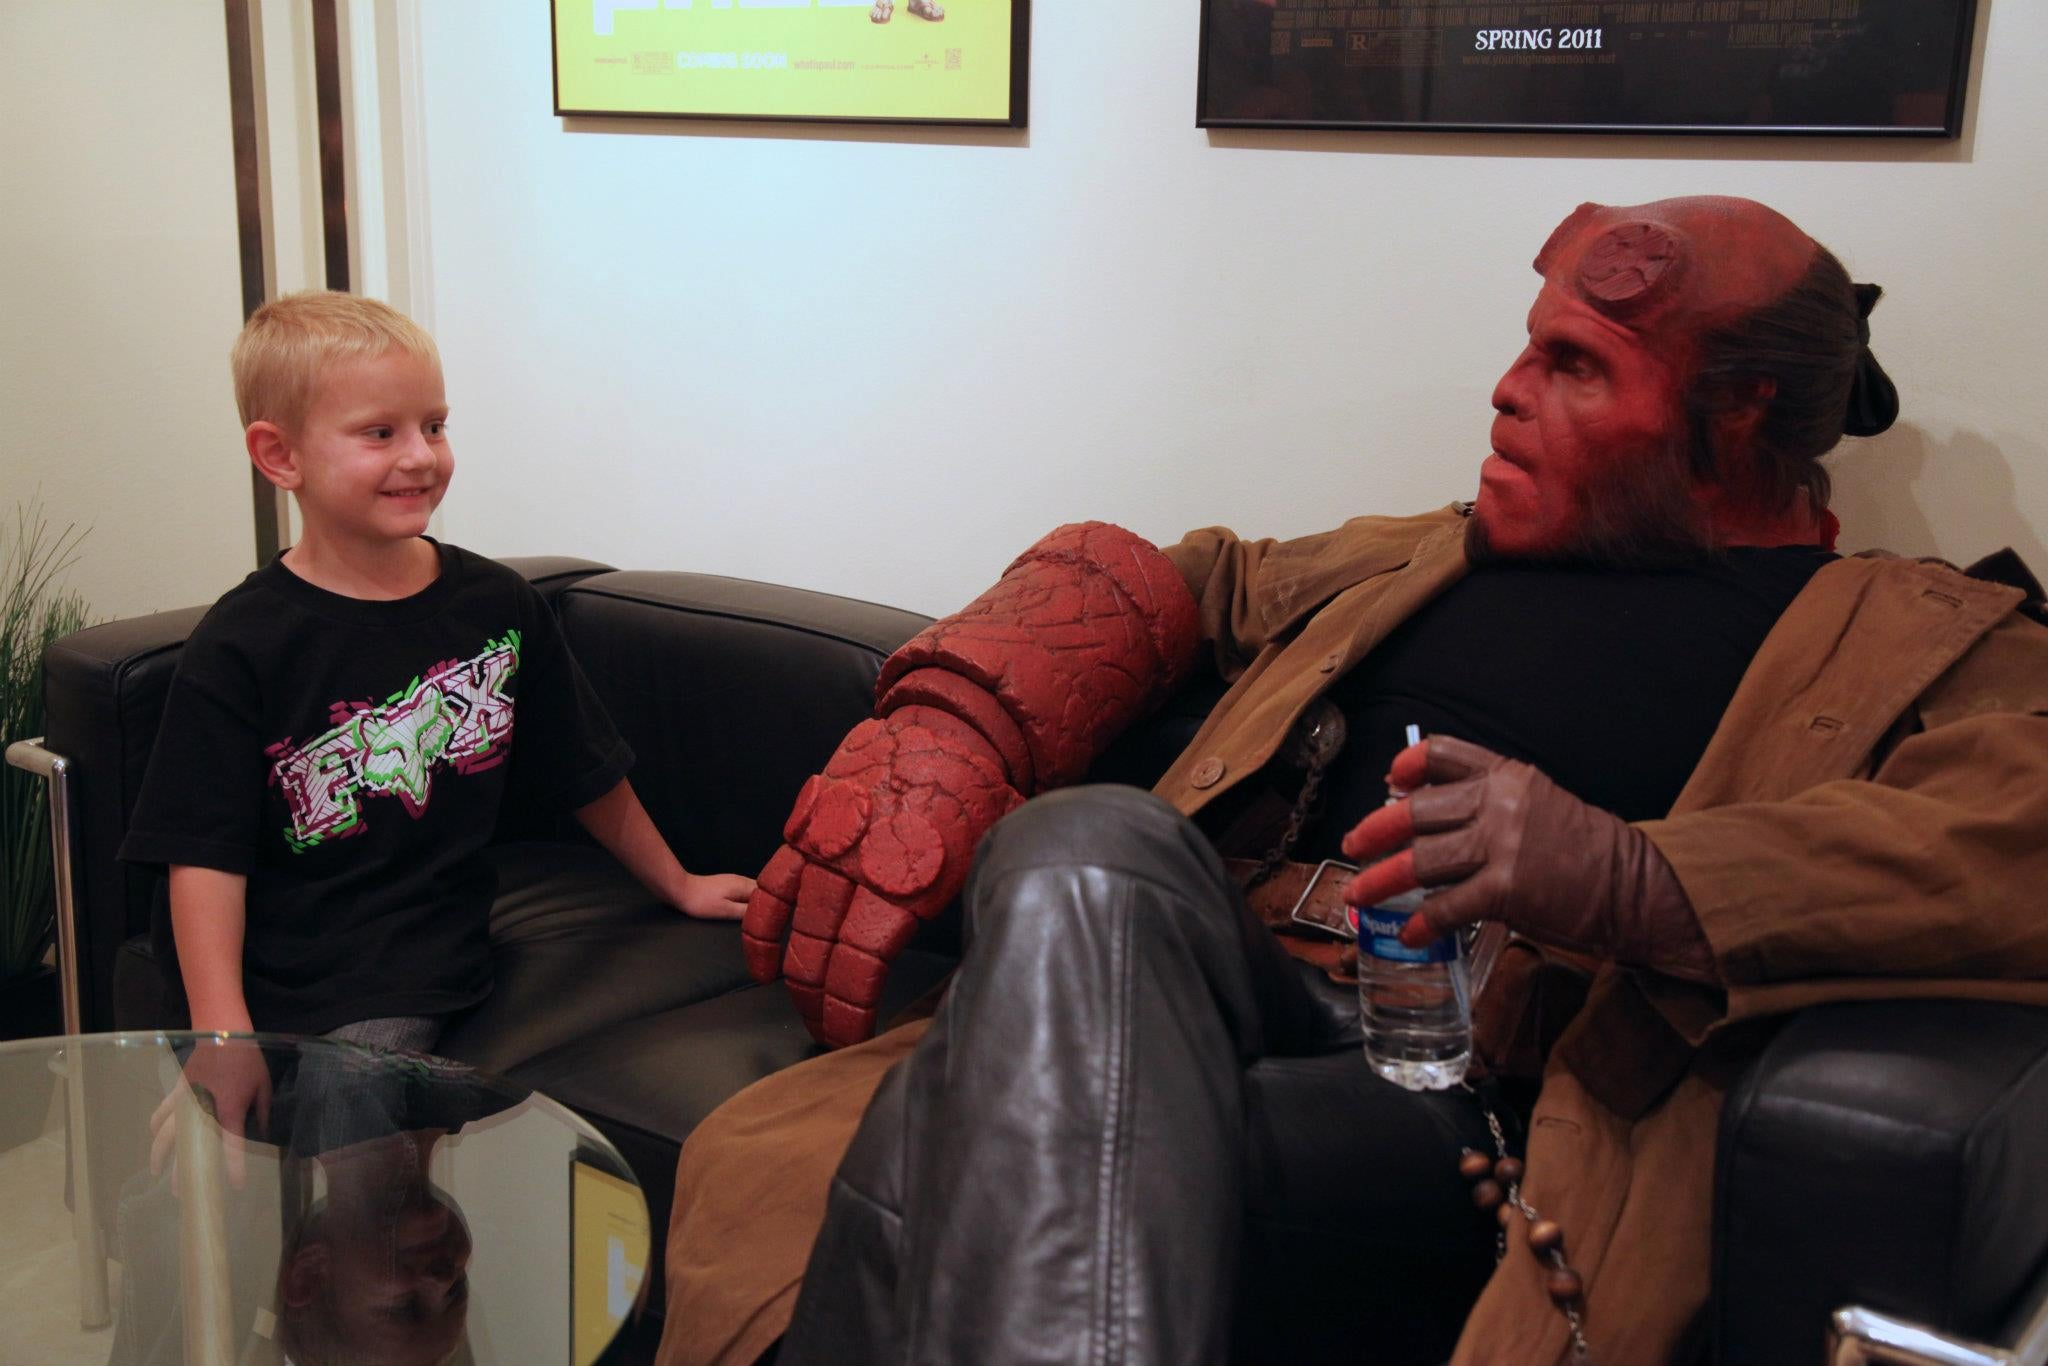 Hellboy and Make-A-Wish